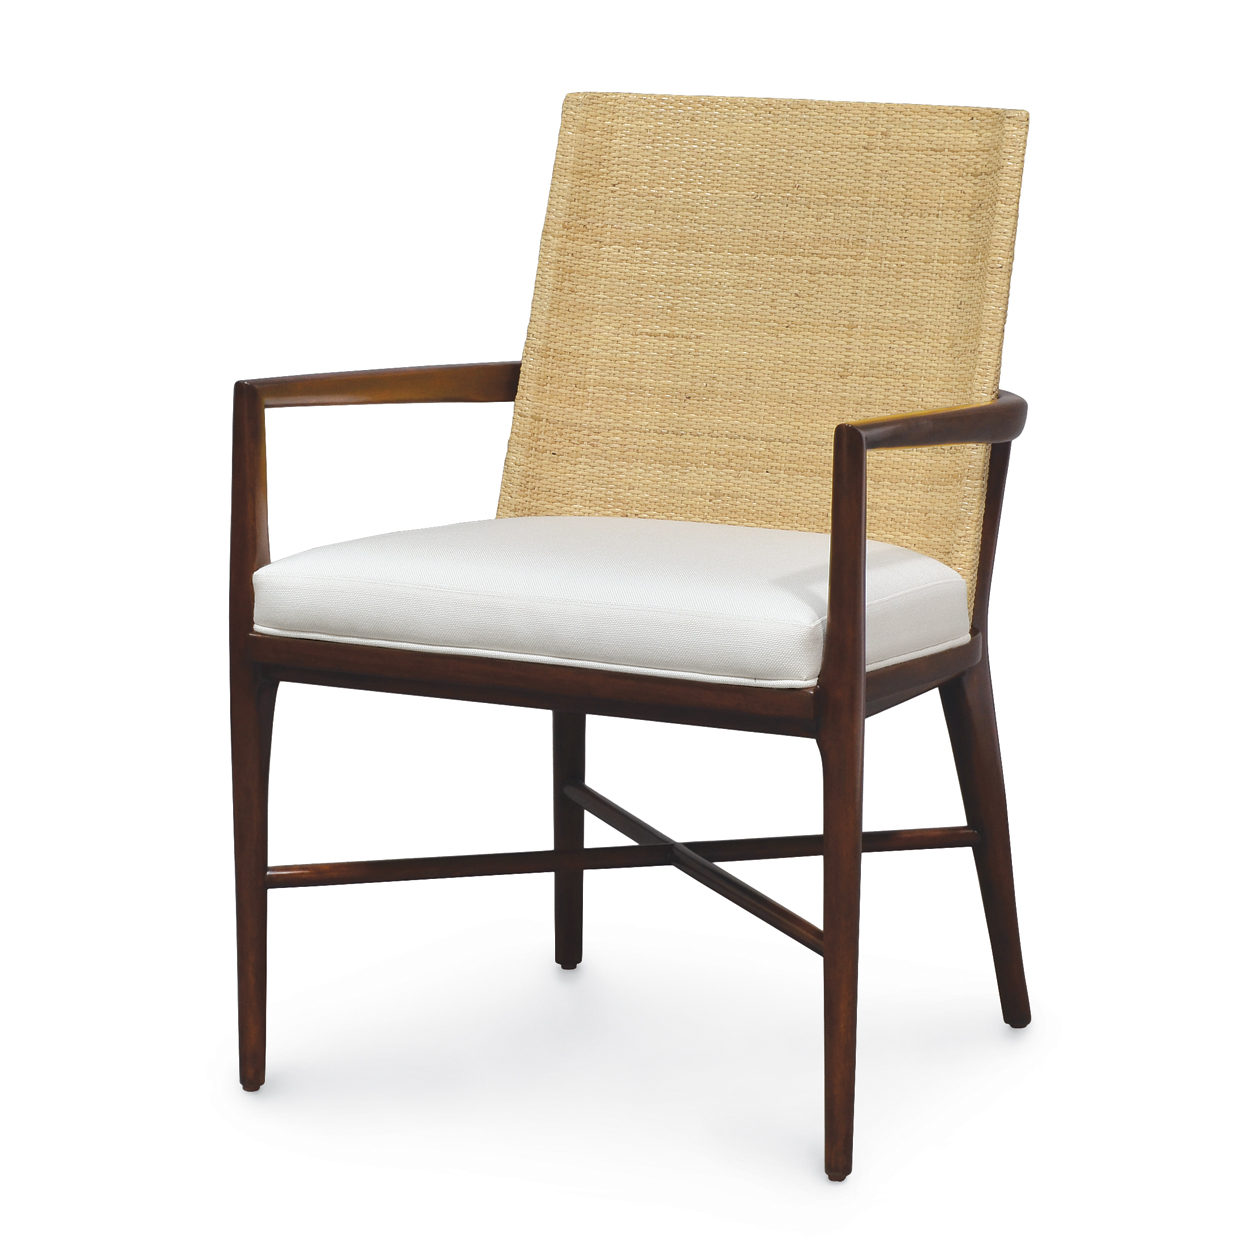 Delightful Description. HANOVER ARM CHAIR